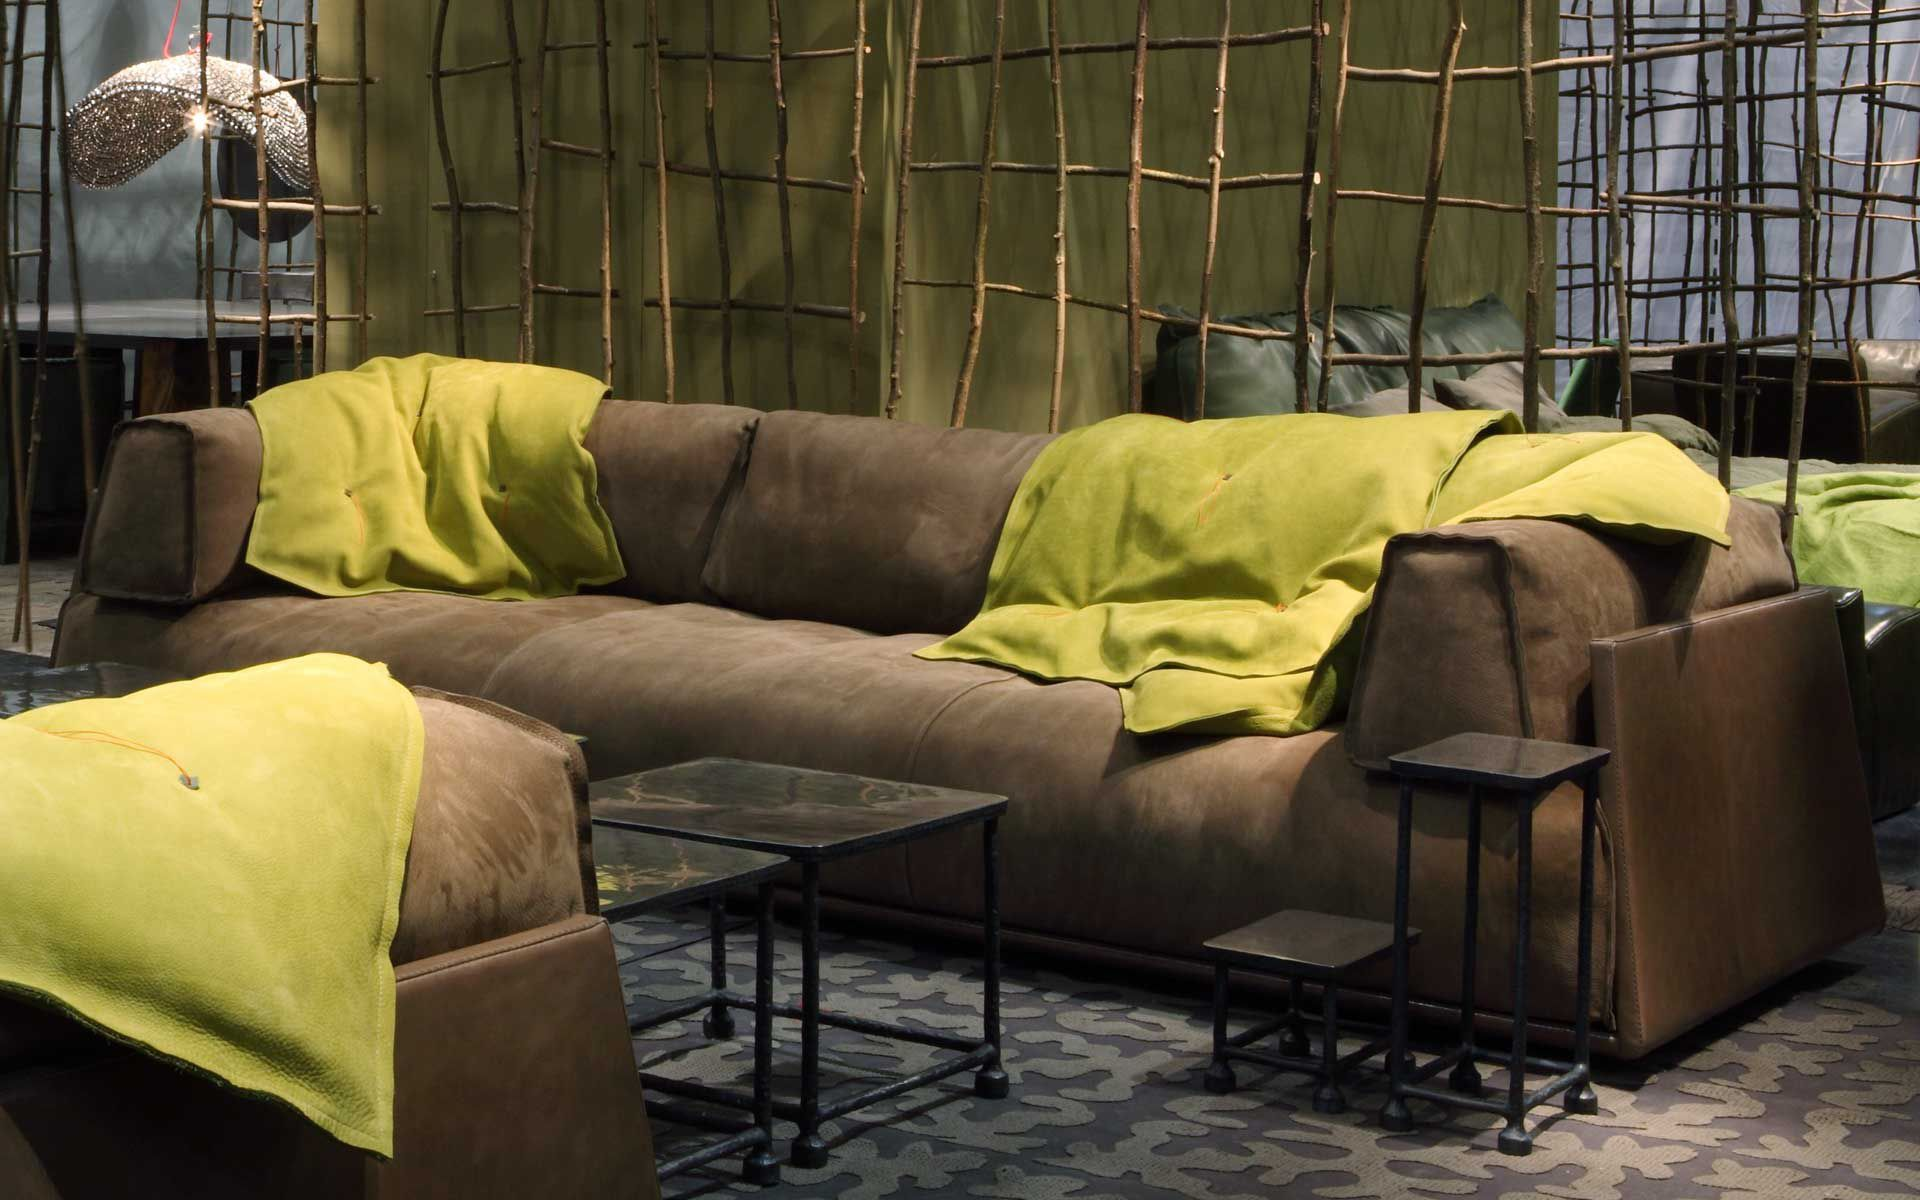 Merveilleux Contemporary Leather Sofa   HARD U0026 SOFT By Paola Navone   Baxter